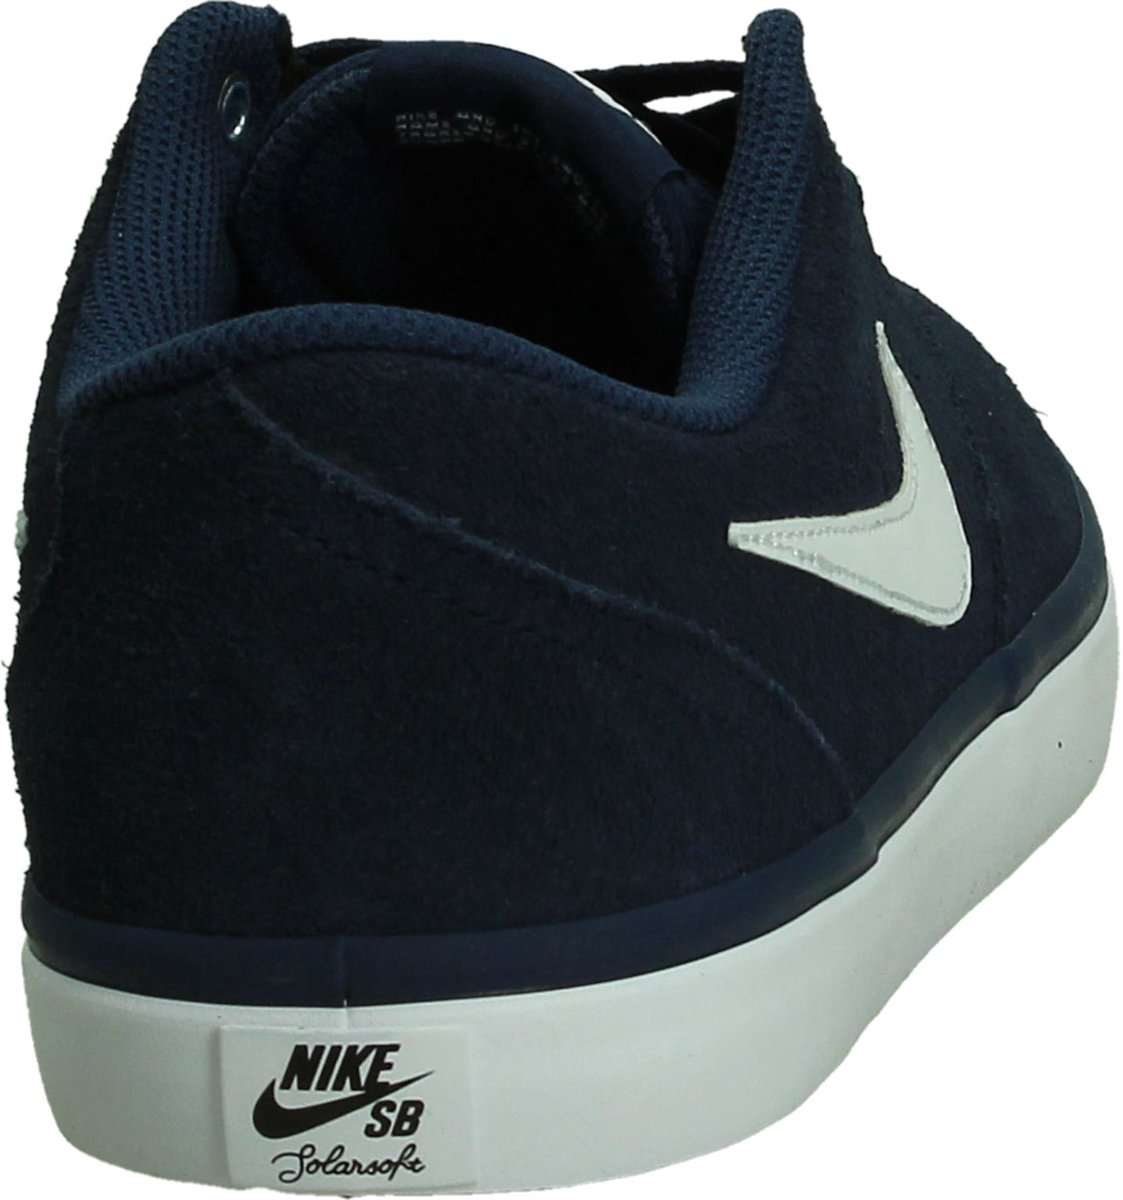 competitive price 584af 24198 bol.com  Nike - Sb Check Solar - Sneaker laag sportief - Heren - Maat 43 -  Blauw - 400.